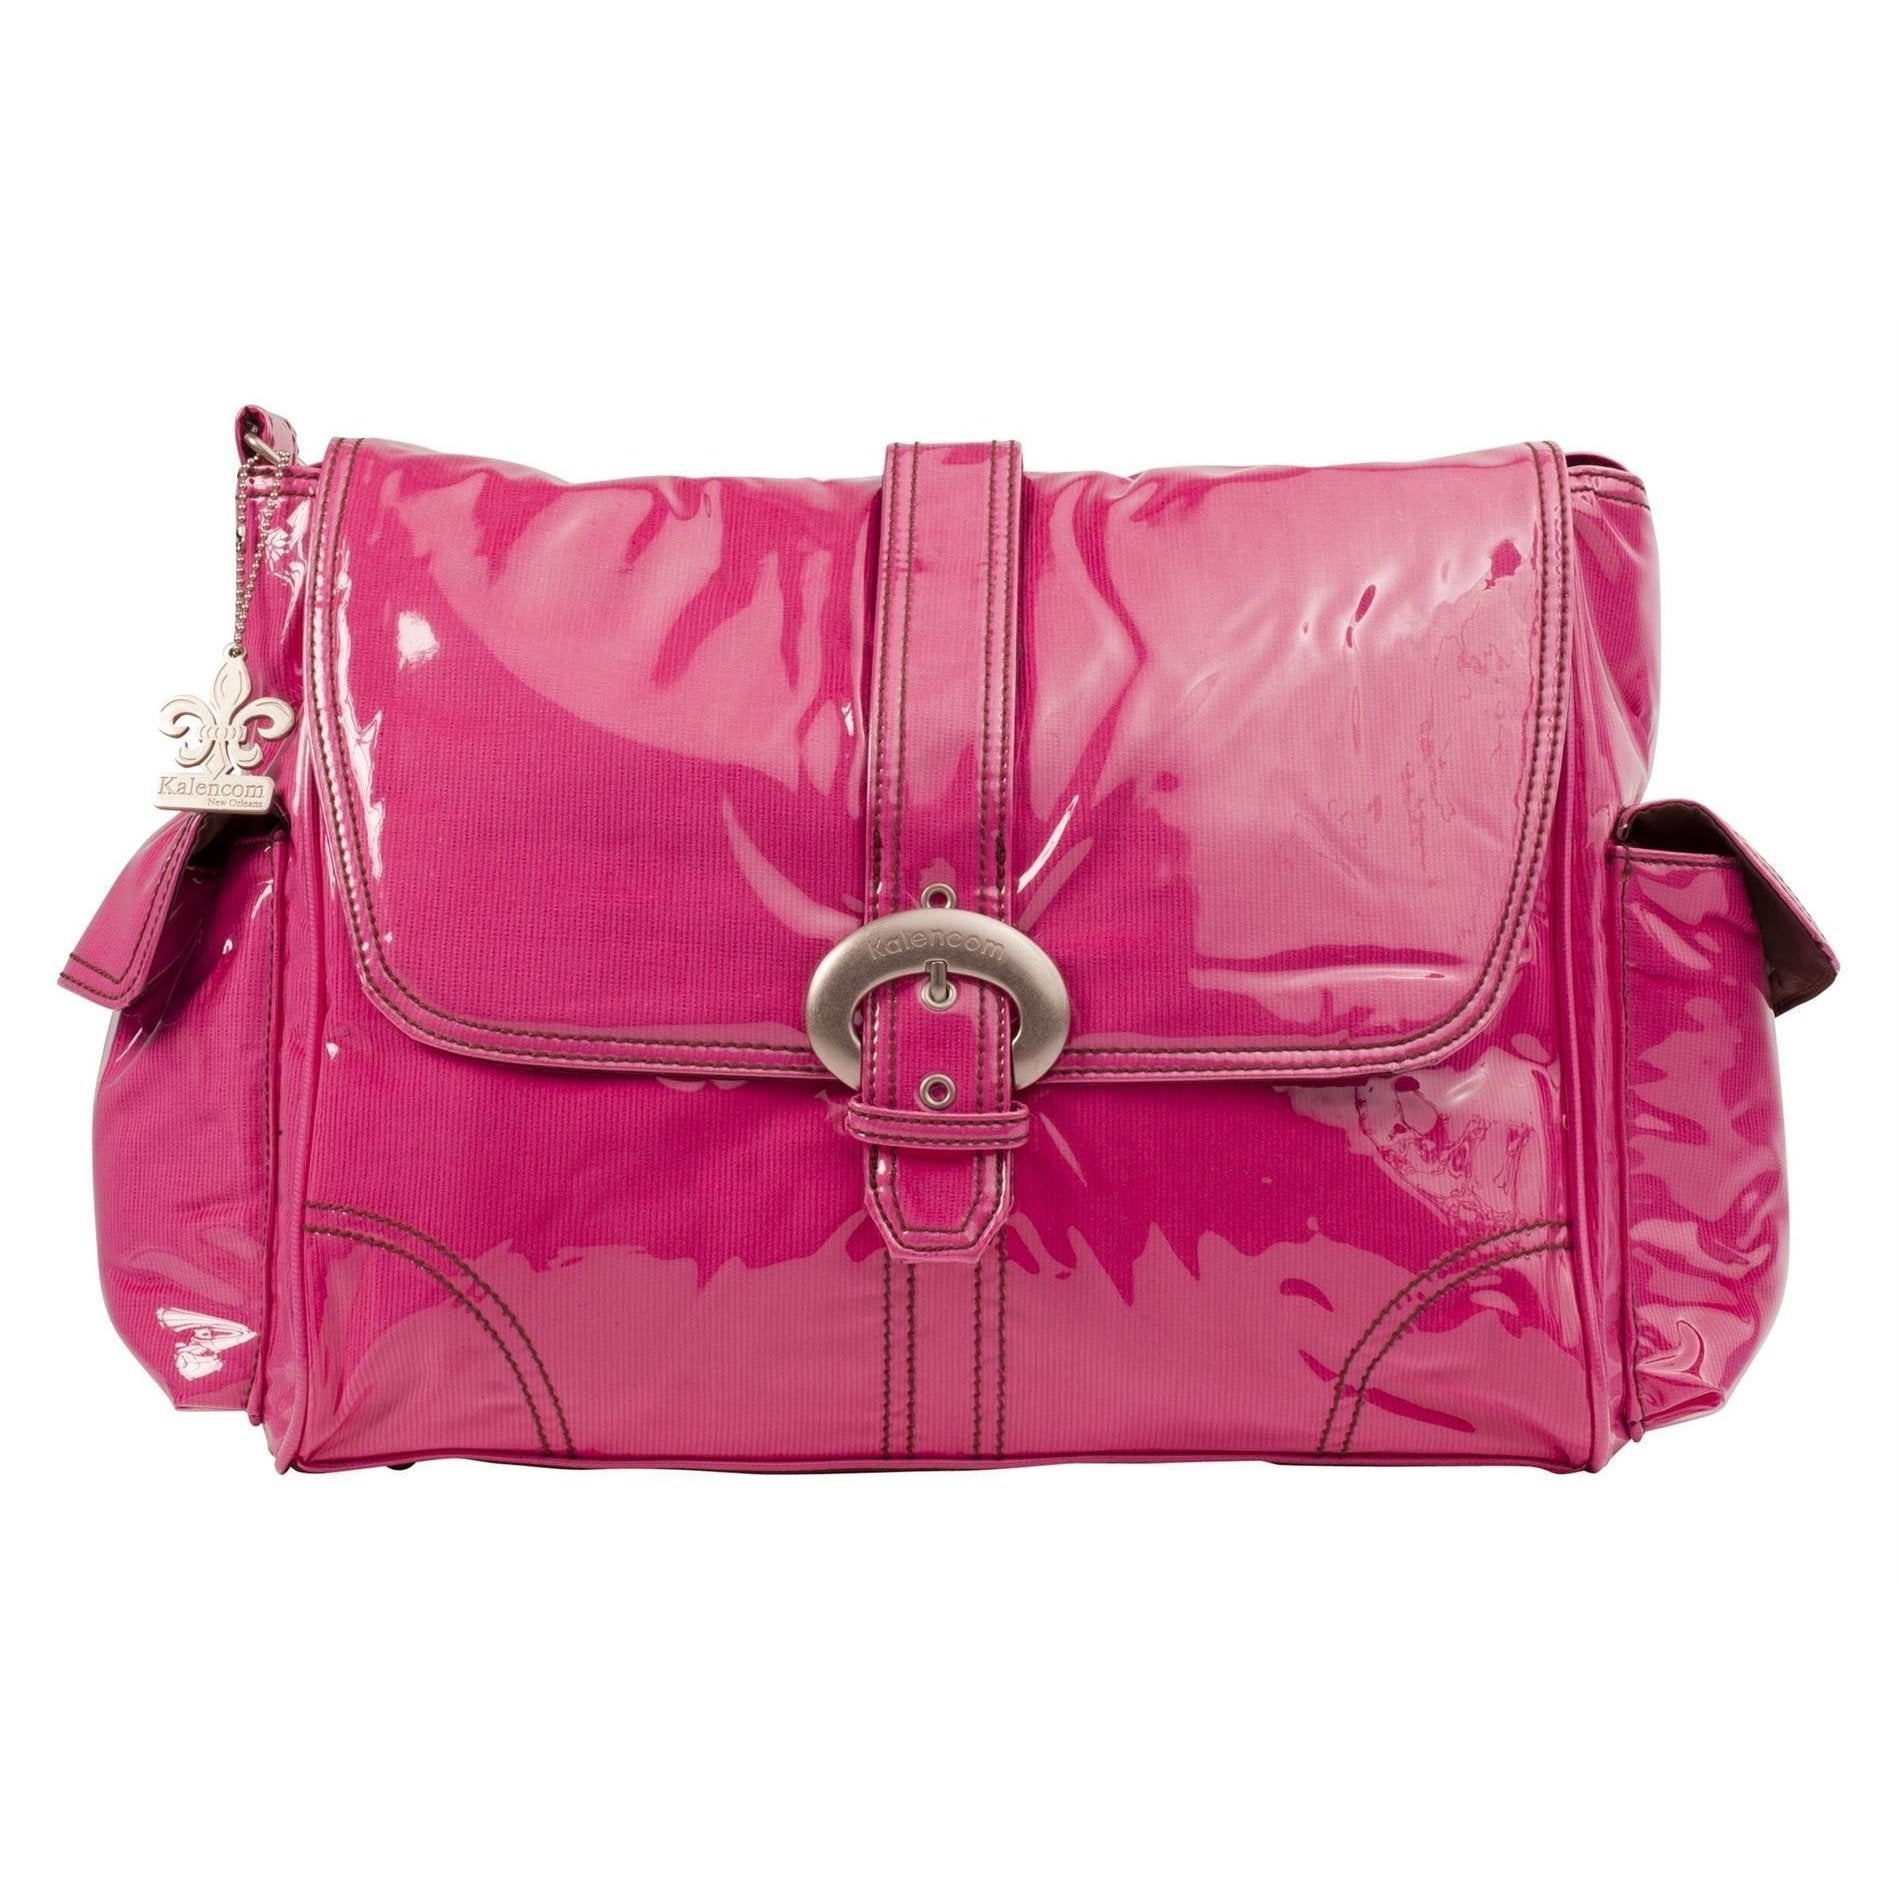 Hot Pink Corduroy Laminated Buckle Diaper Bag | Style 2960 - Kalencom-Diaper Bags-Jack and Jill Boutique